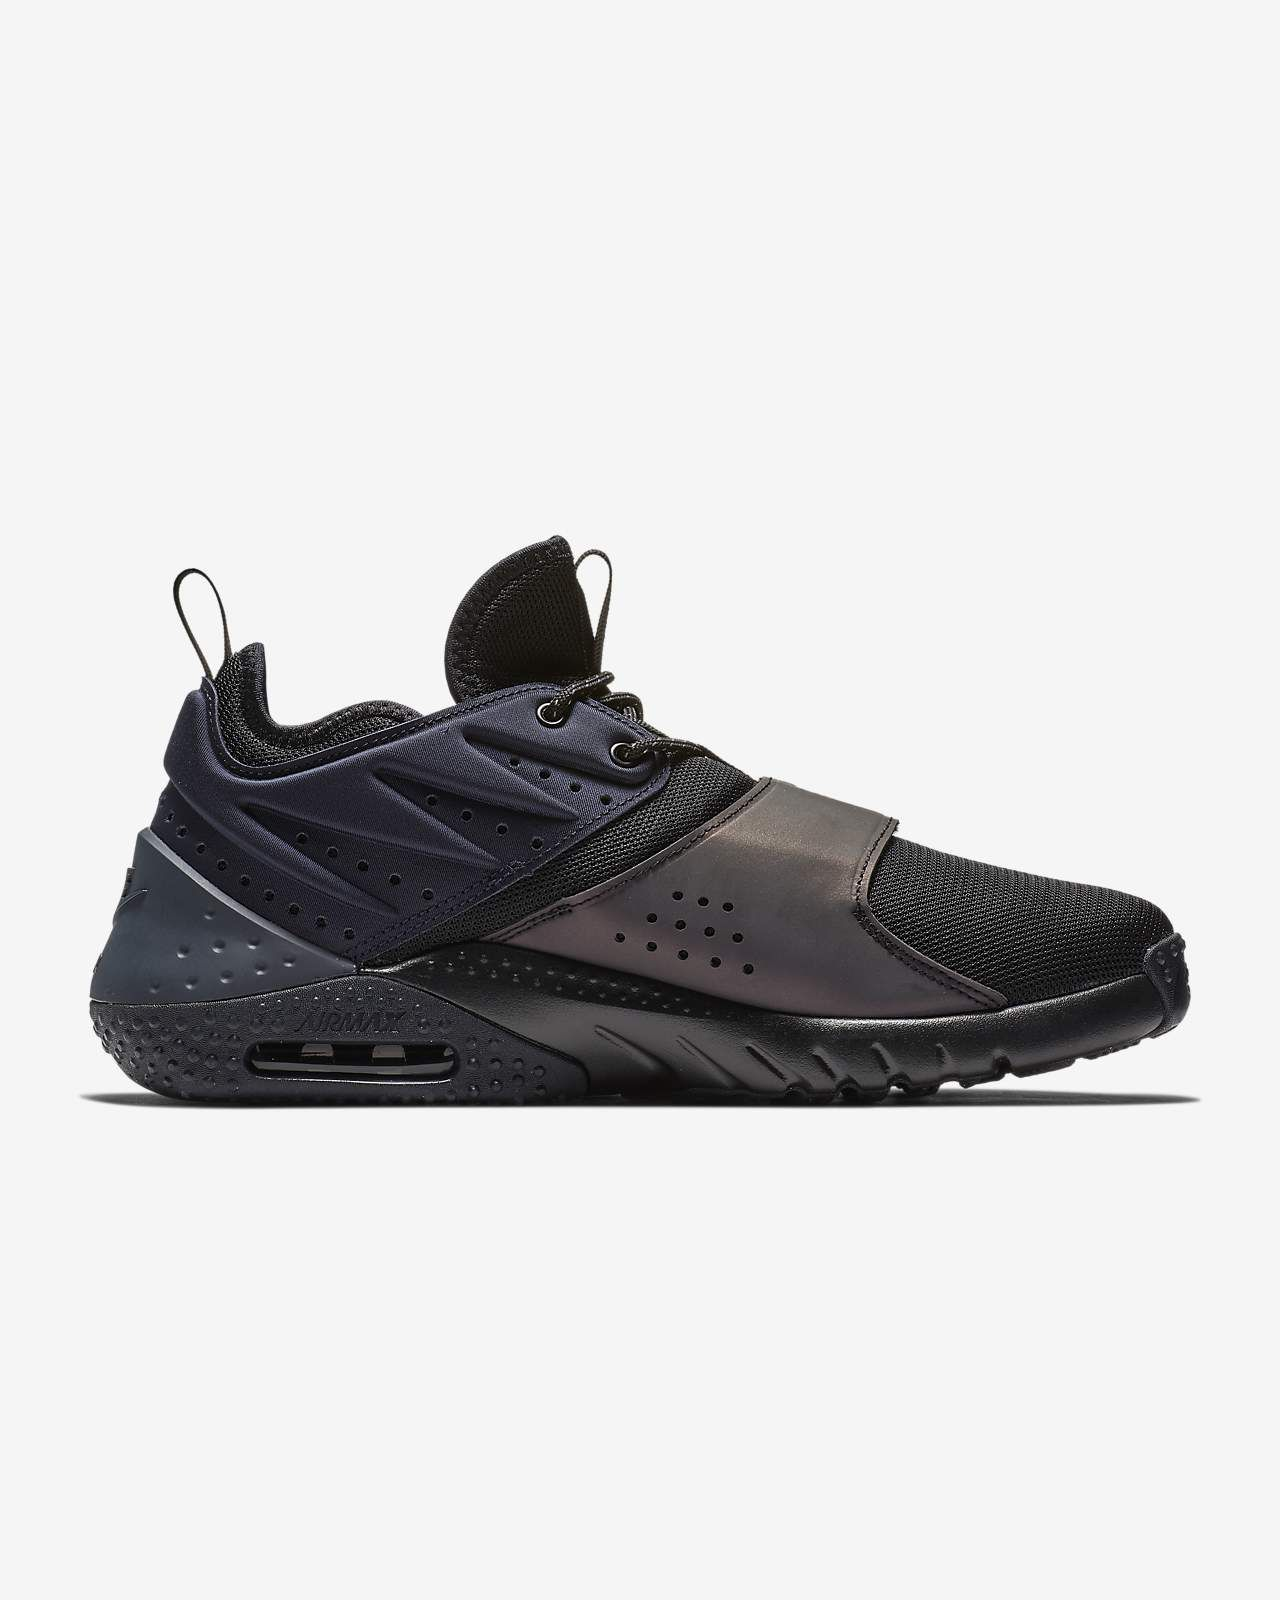 329ff12a70608 Air Max Trainer 1 AMP Men s Training Shoe in 2019